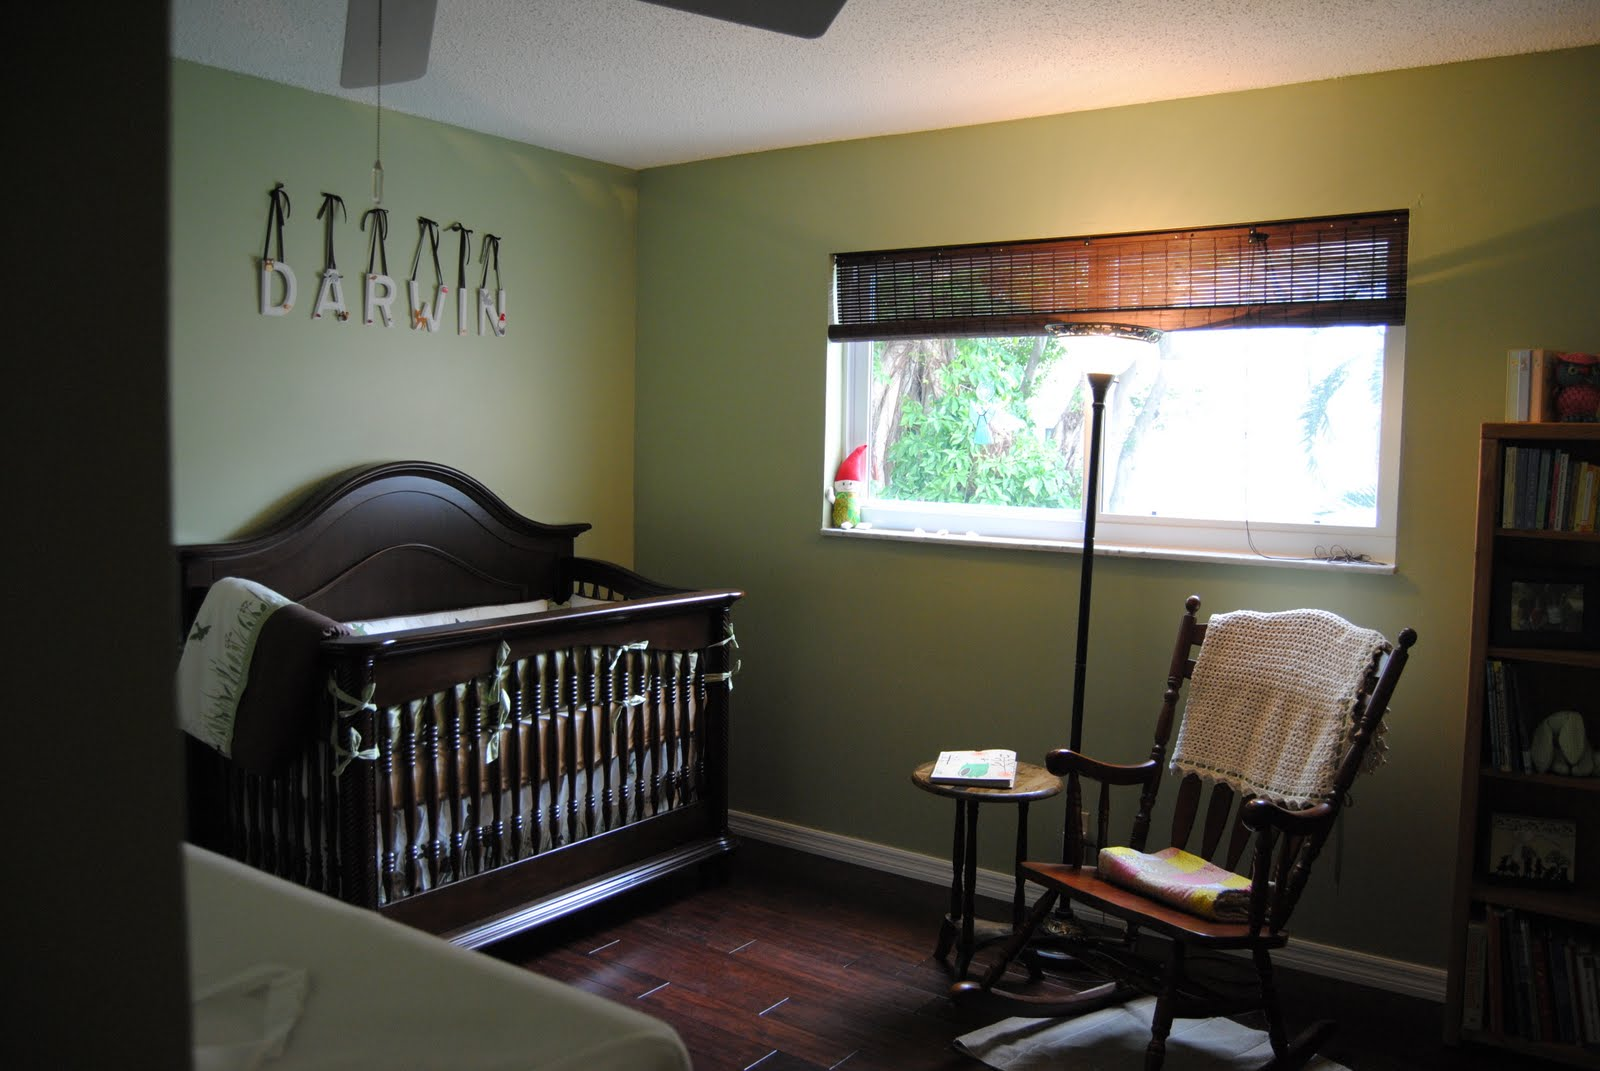 Baby Safe Paint Home Depot Home Painting Ideas